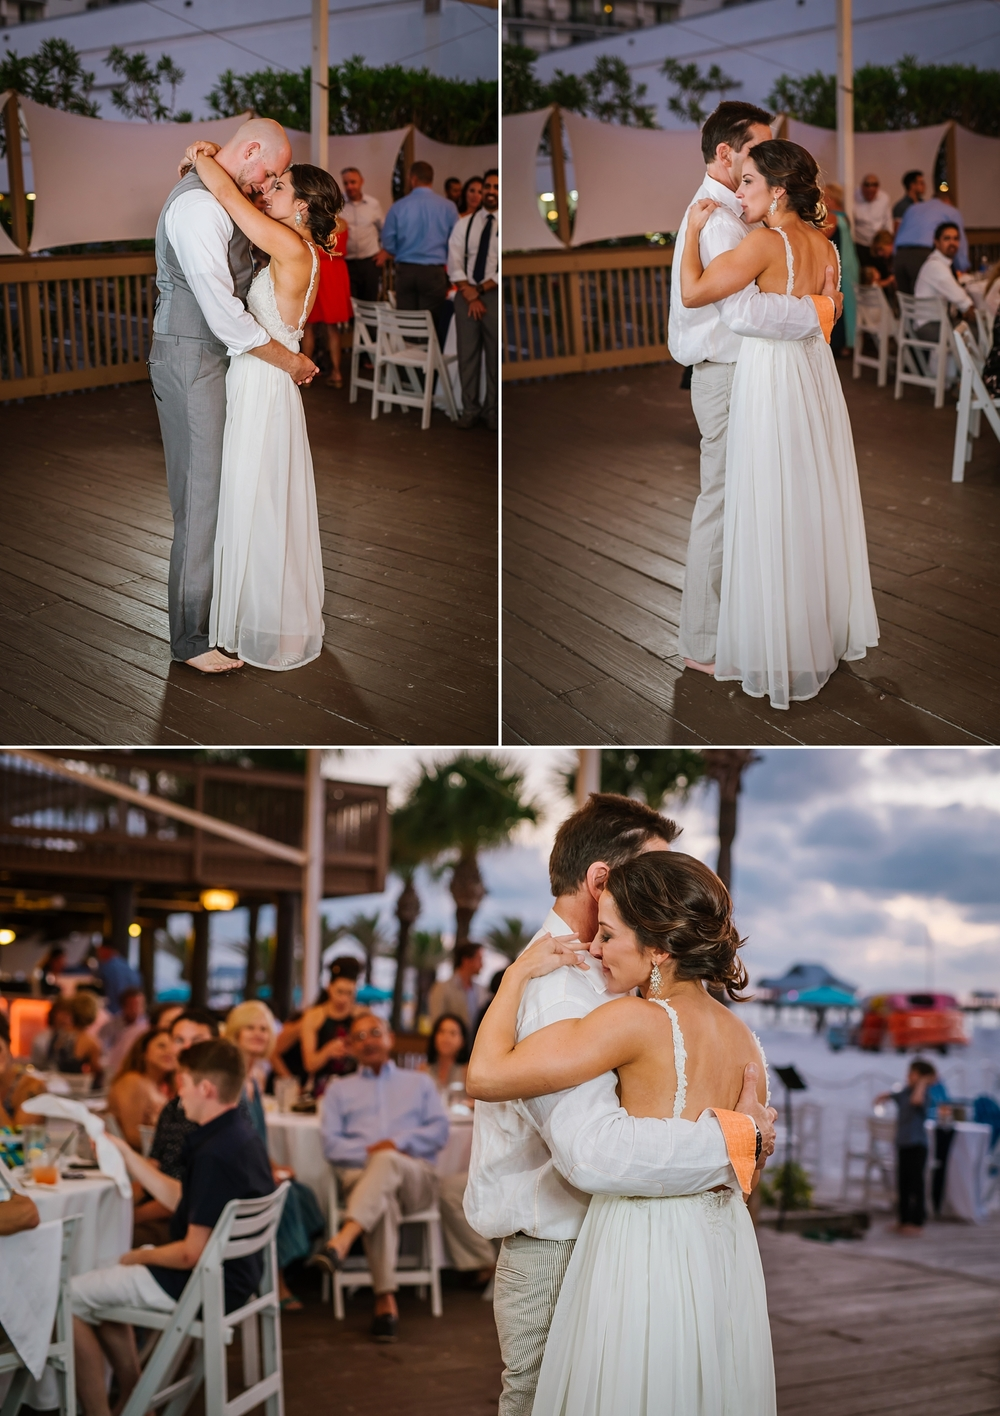 clearwater-beach-wedding-photography-ashlee-hamon_0031.jpg